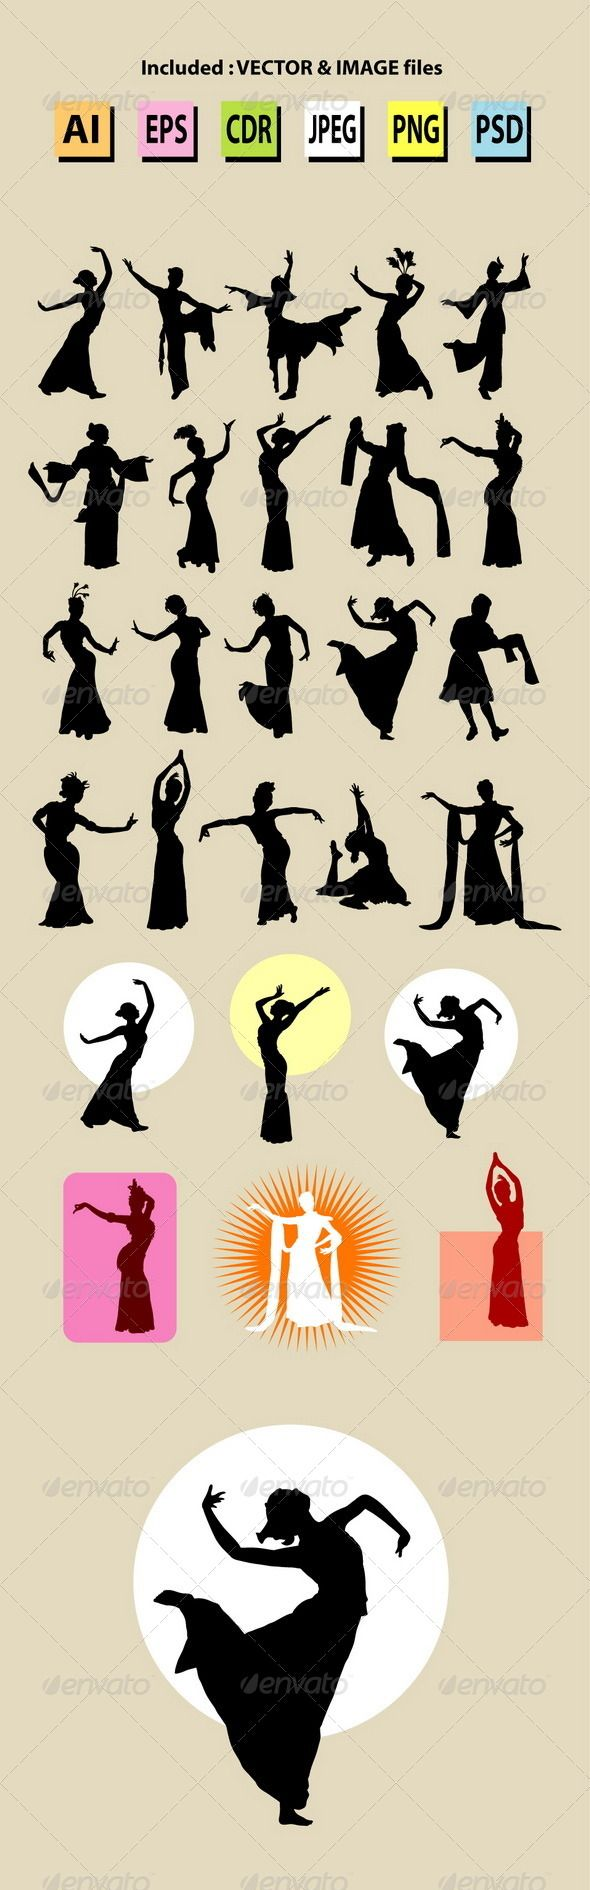 Female Chinese Dance Silhouettes #GraphicRiver Woman traditional chinese dancer pose. Good use for symbol, logo, icon, sticker design, or any design you want. Easy to use, edit, or change color. Use Adobe Illustrator or any support vector program to edit the vector file. ZIP included : AI CS, EPS8, CDR coreldraw (Vector files = You can use any size you want without loss resolution), JPEG high resolution, PNG transparent, and PSD photoshop file. Created: 10 December 13 Graphics Files…